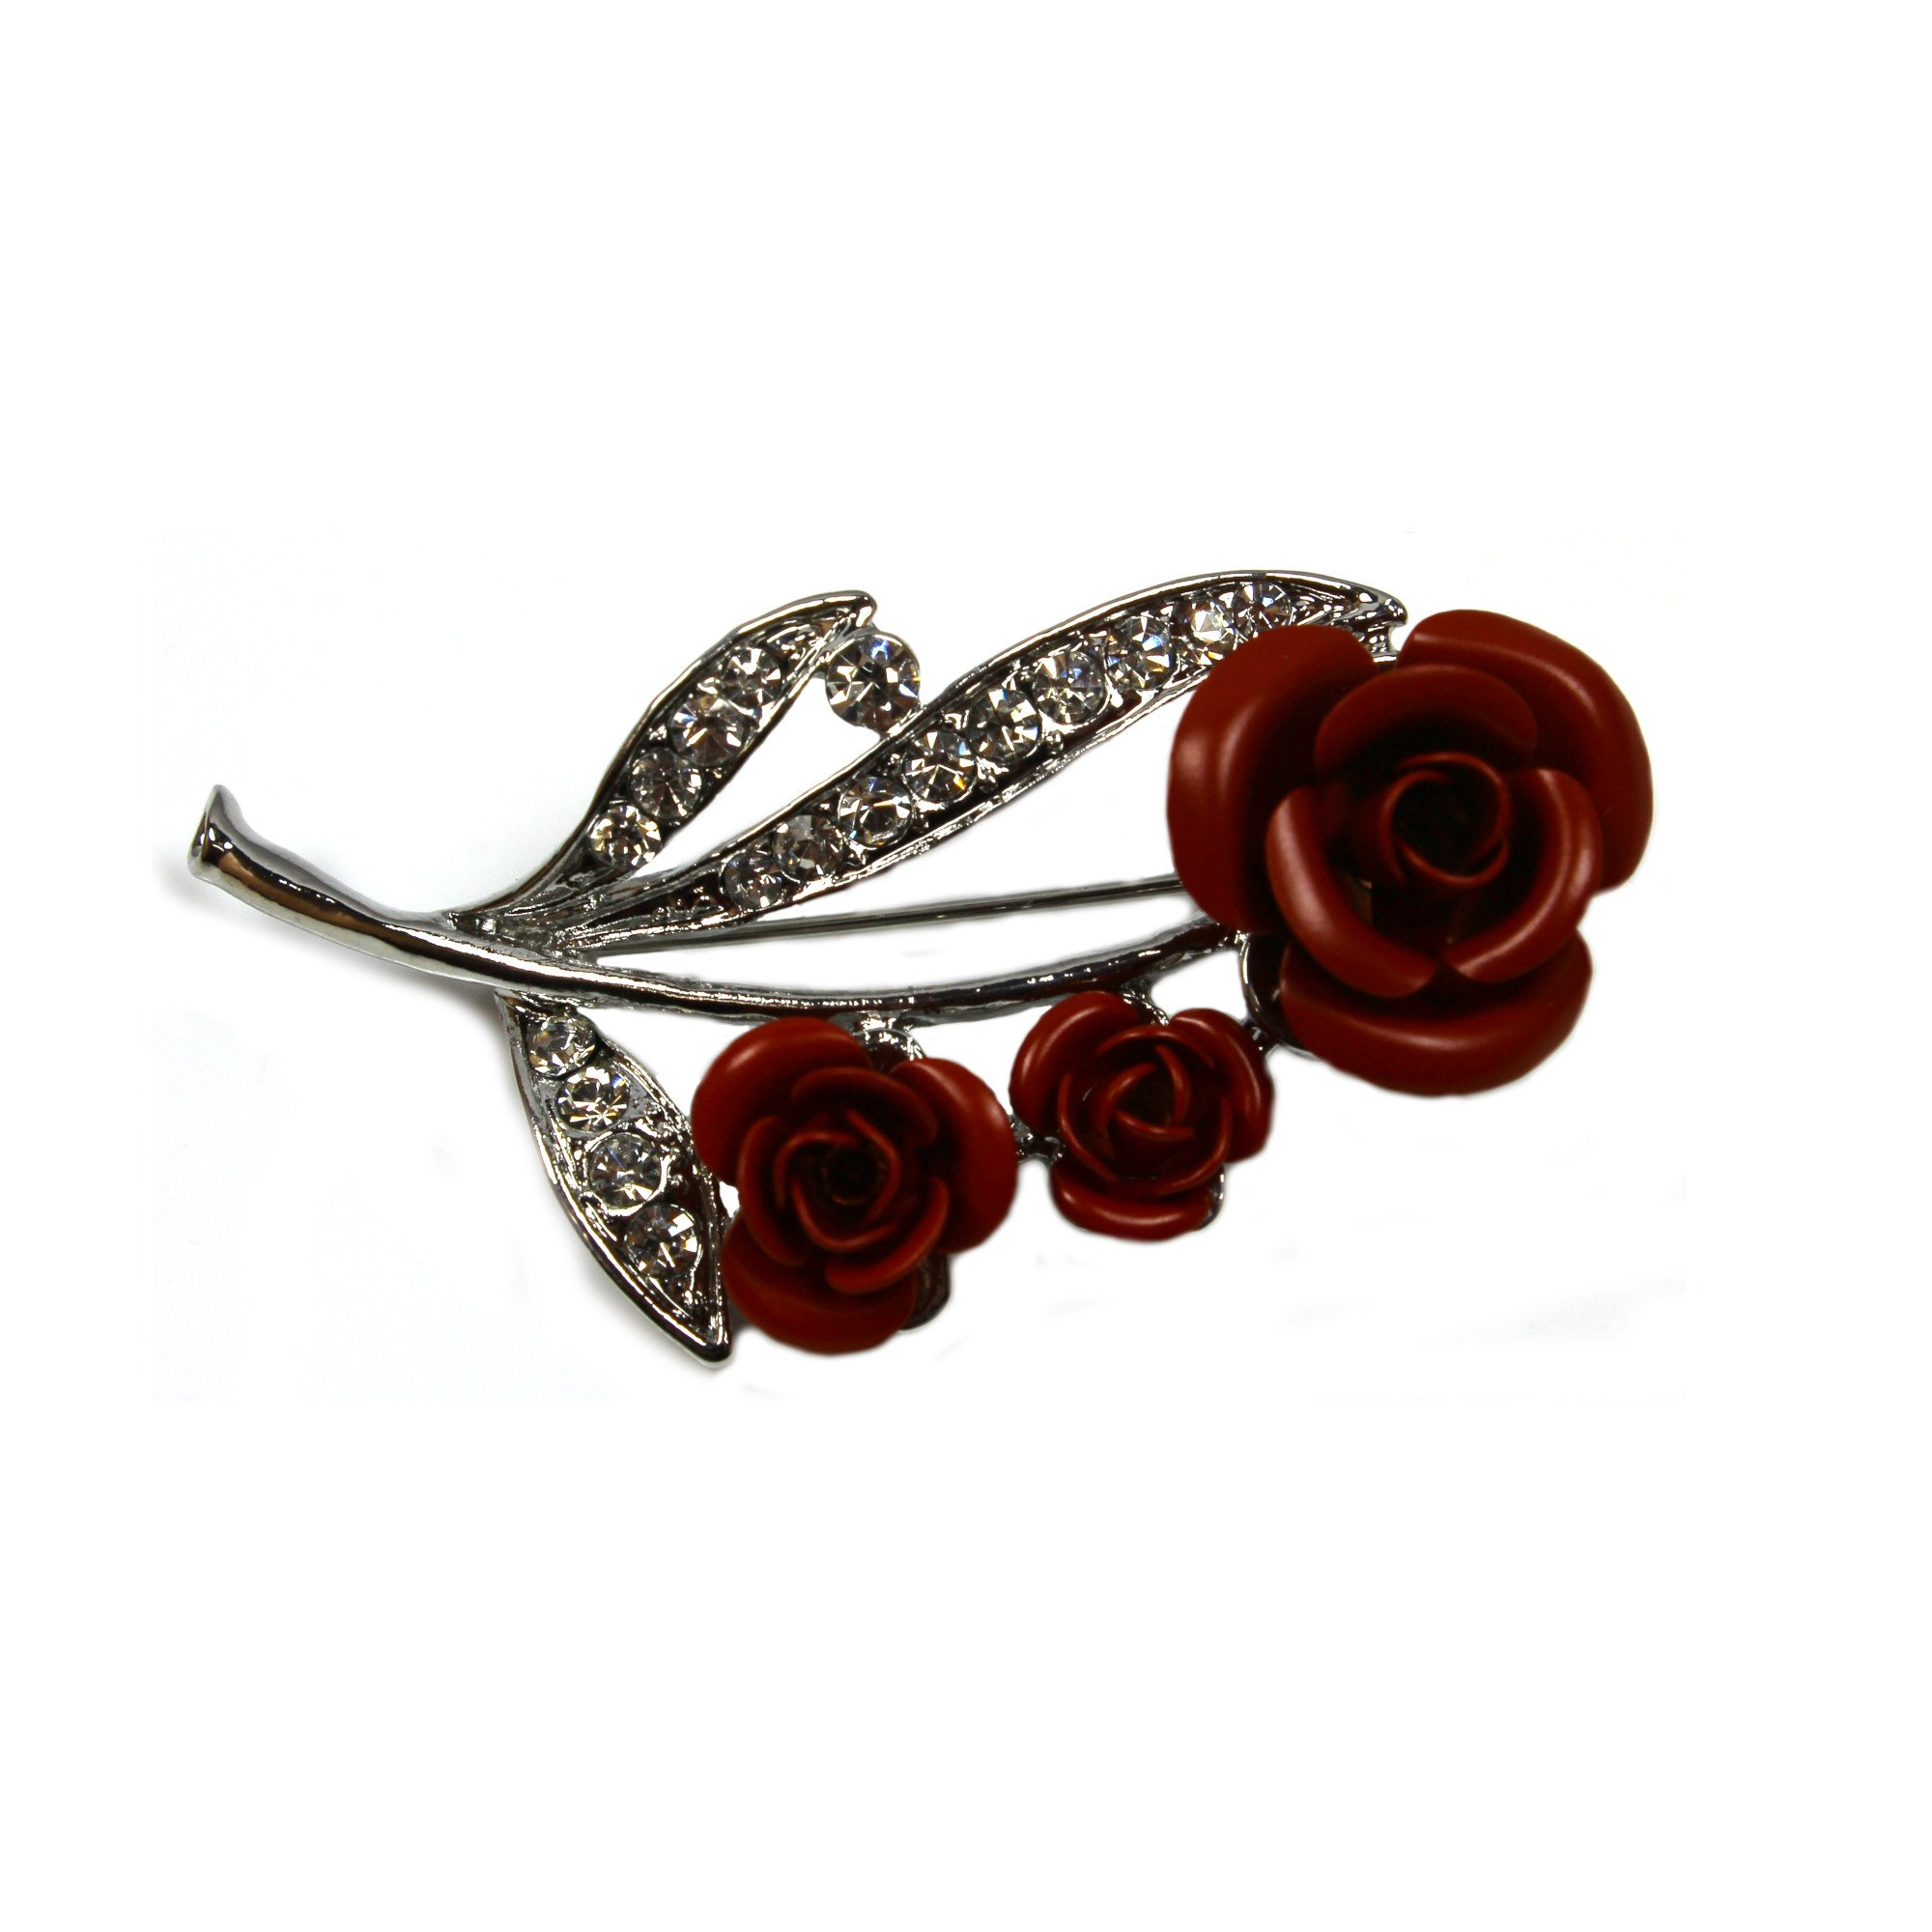 Red rose brooch with diamante leaf